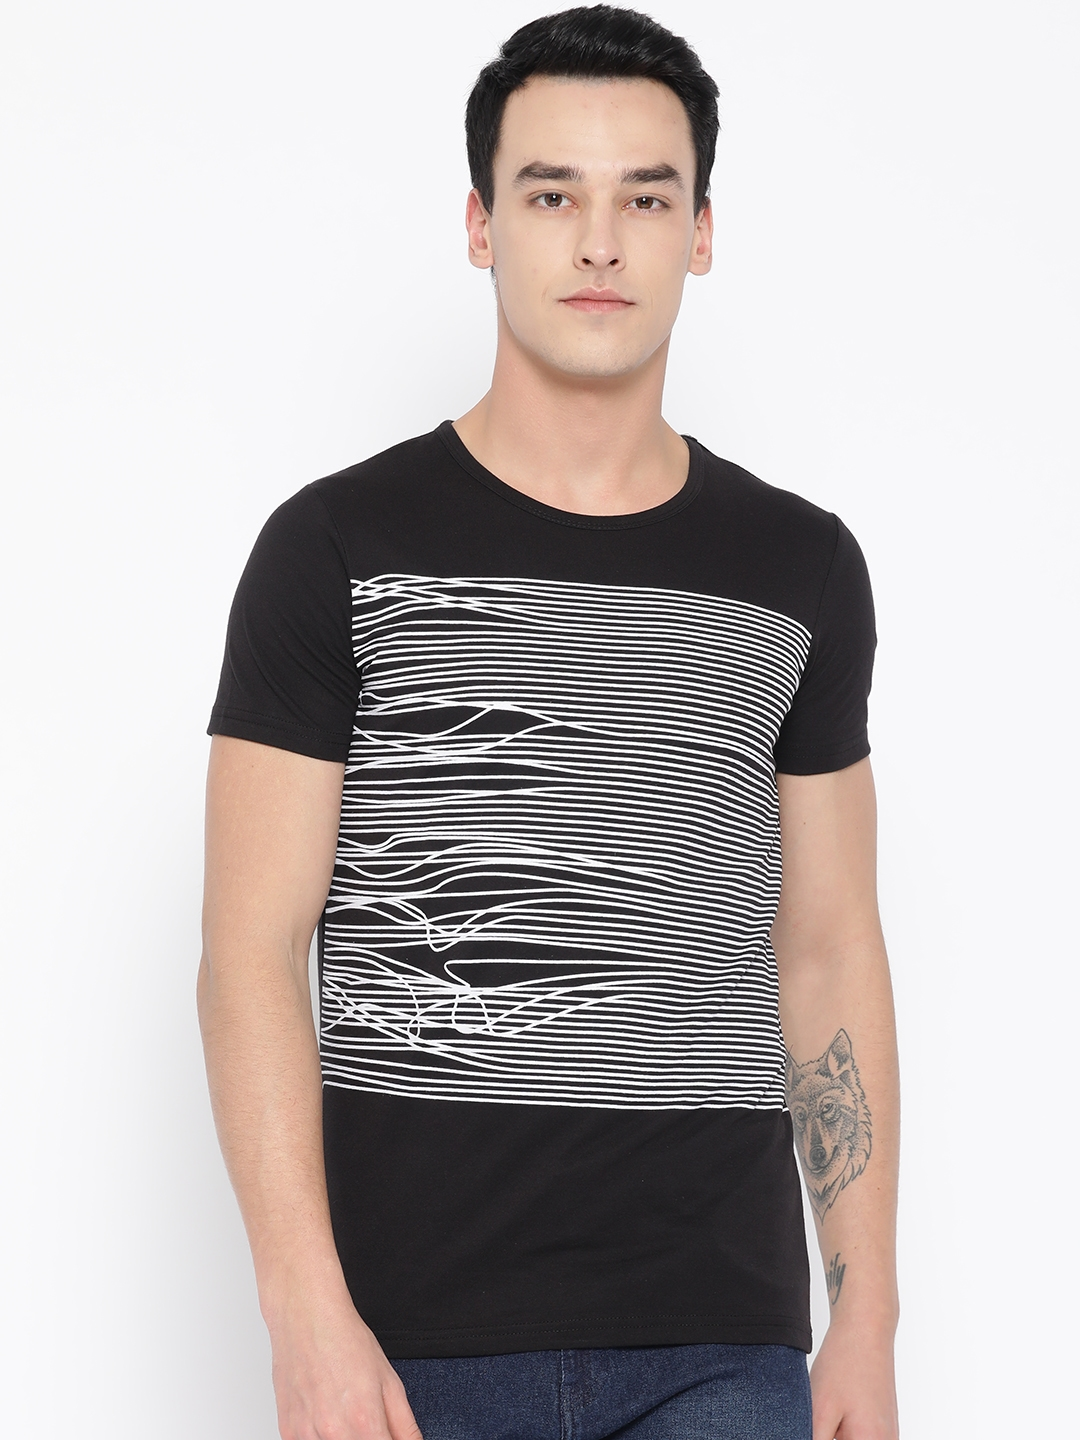 Unisopent Designs Men Black   White Striped Round Neck T shirt